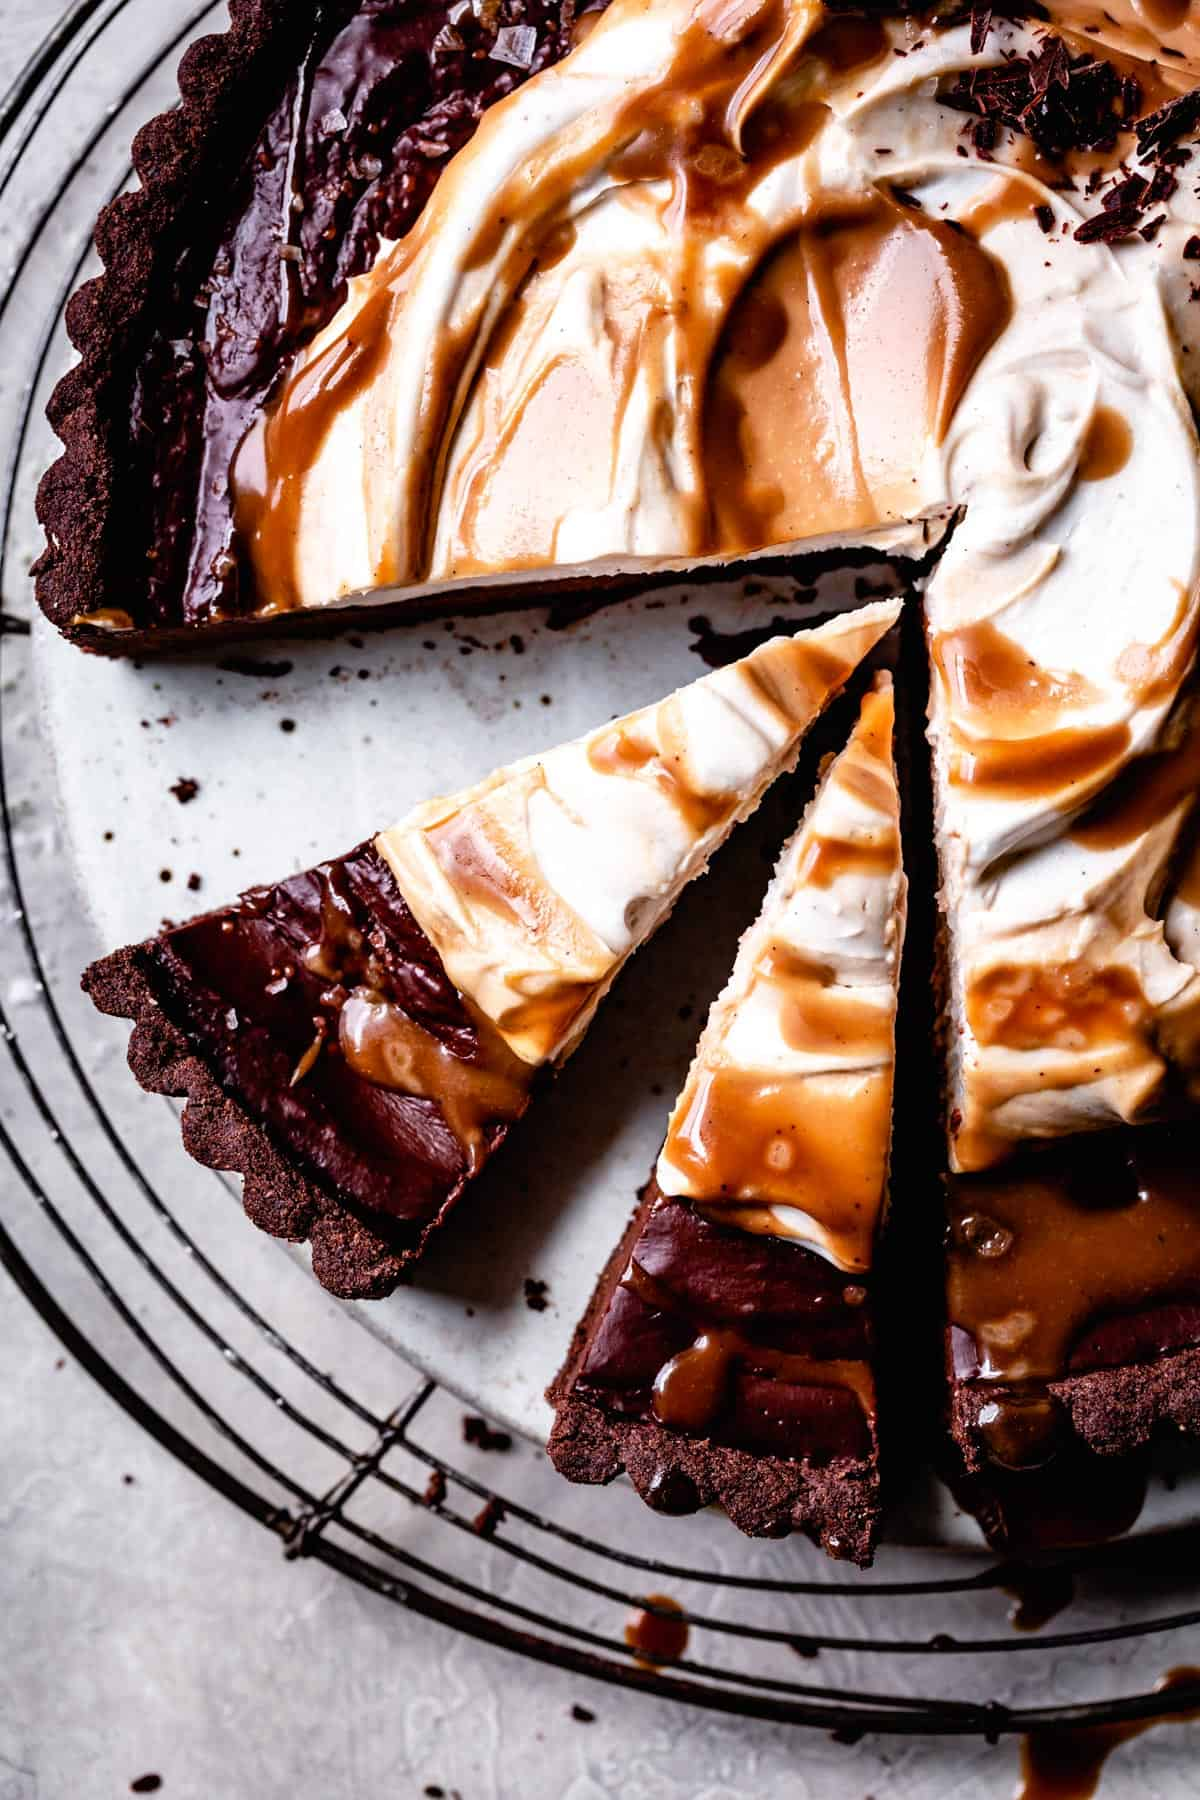 Gluten Free Vegan Chocolate Tart with Tahini and Caramel